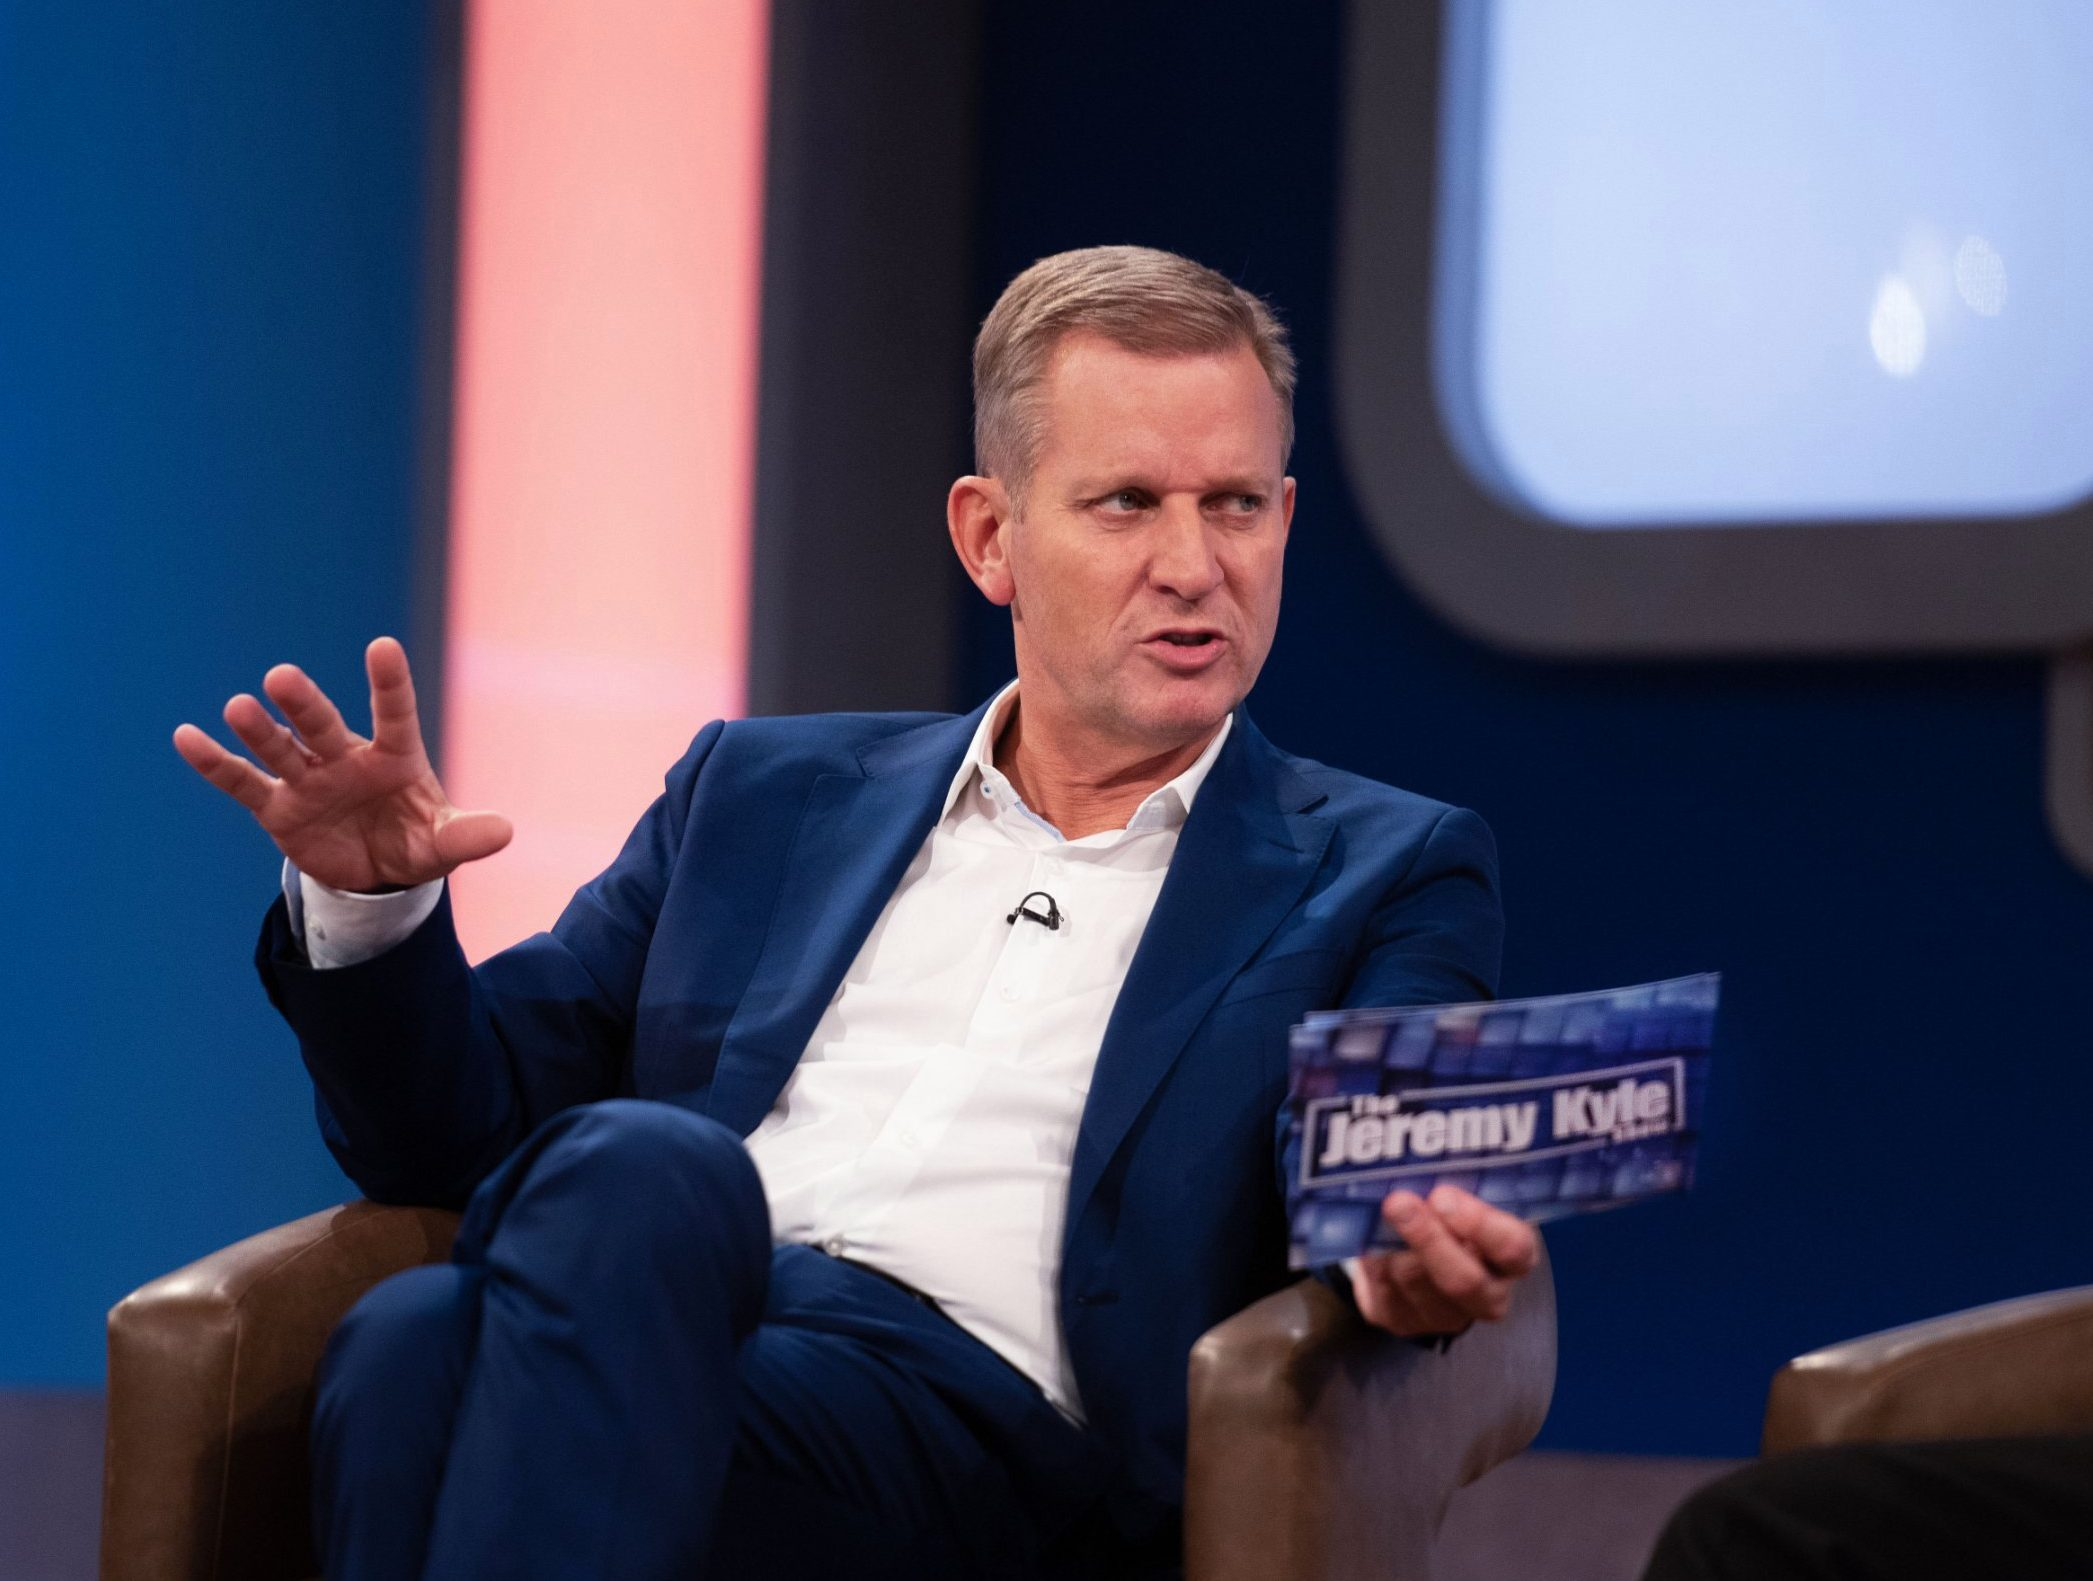 Jeremy Kyle facing scandal amid claims two more guests died by suicide